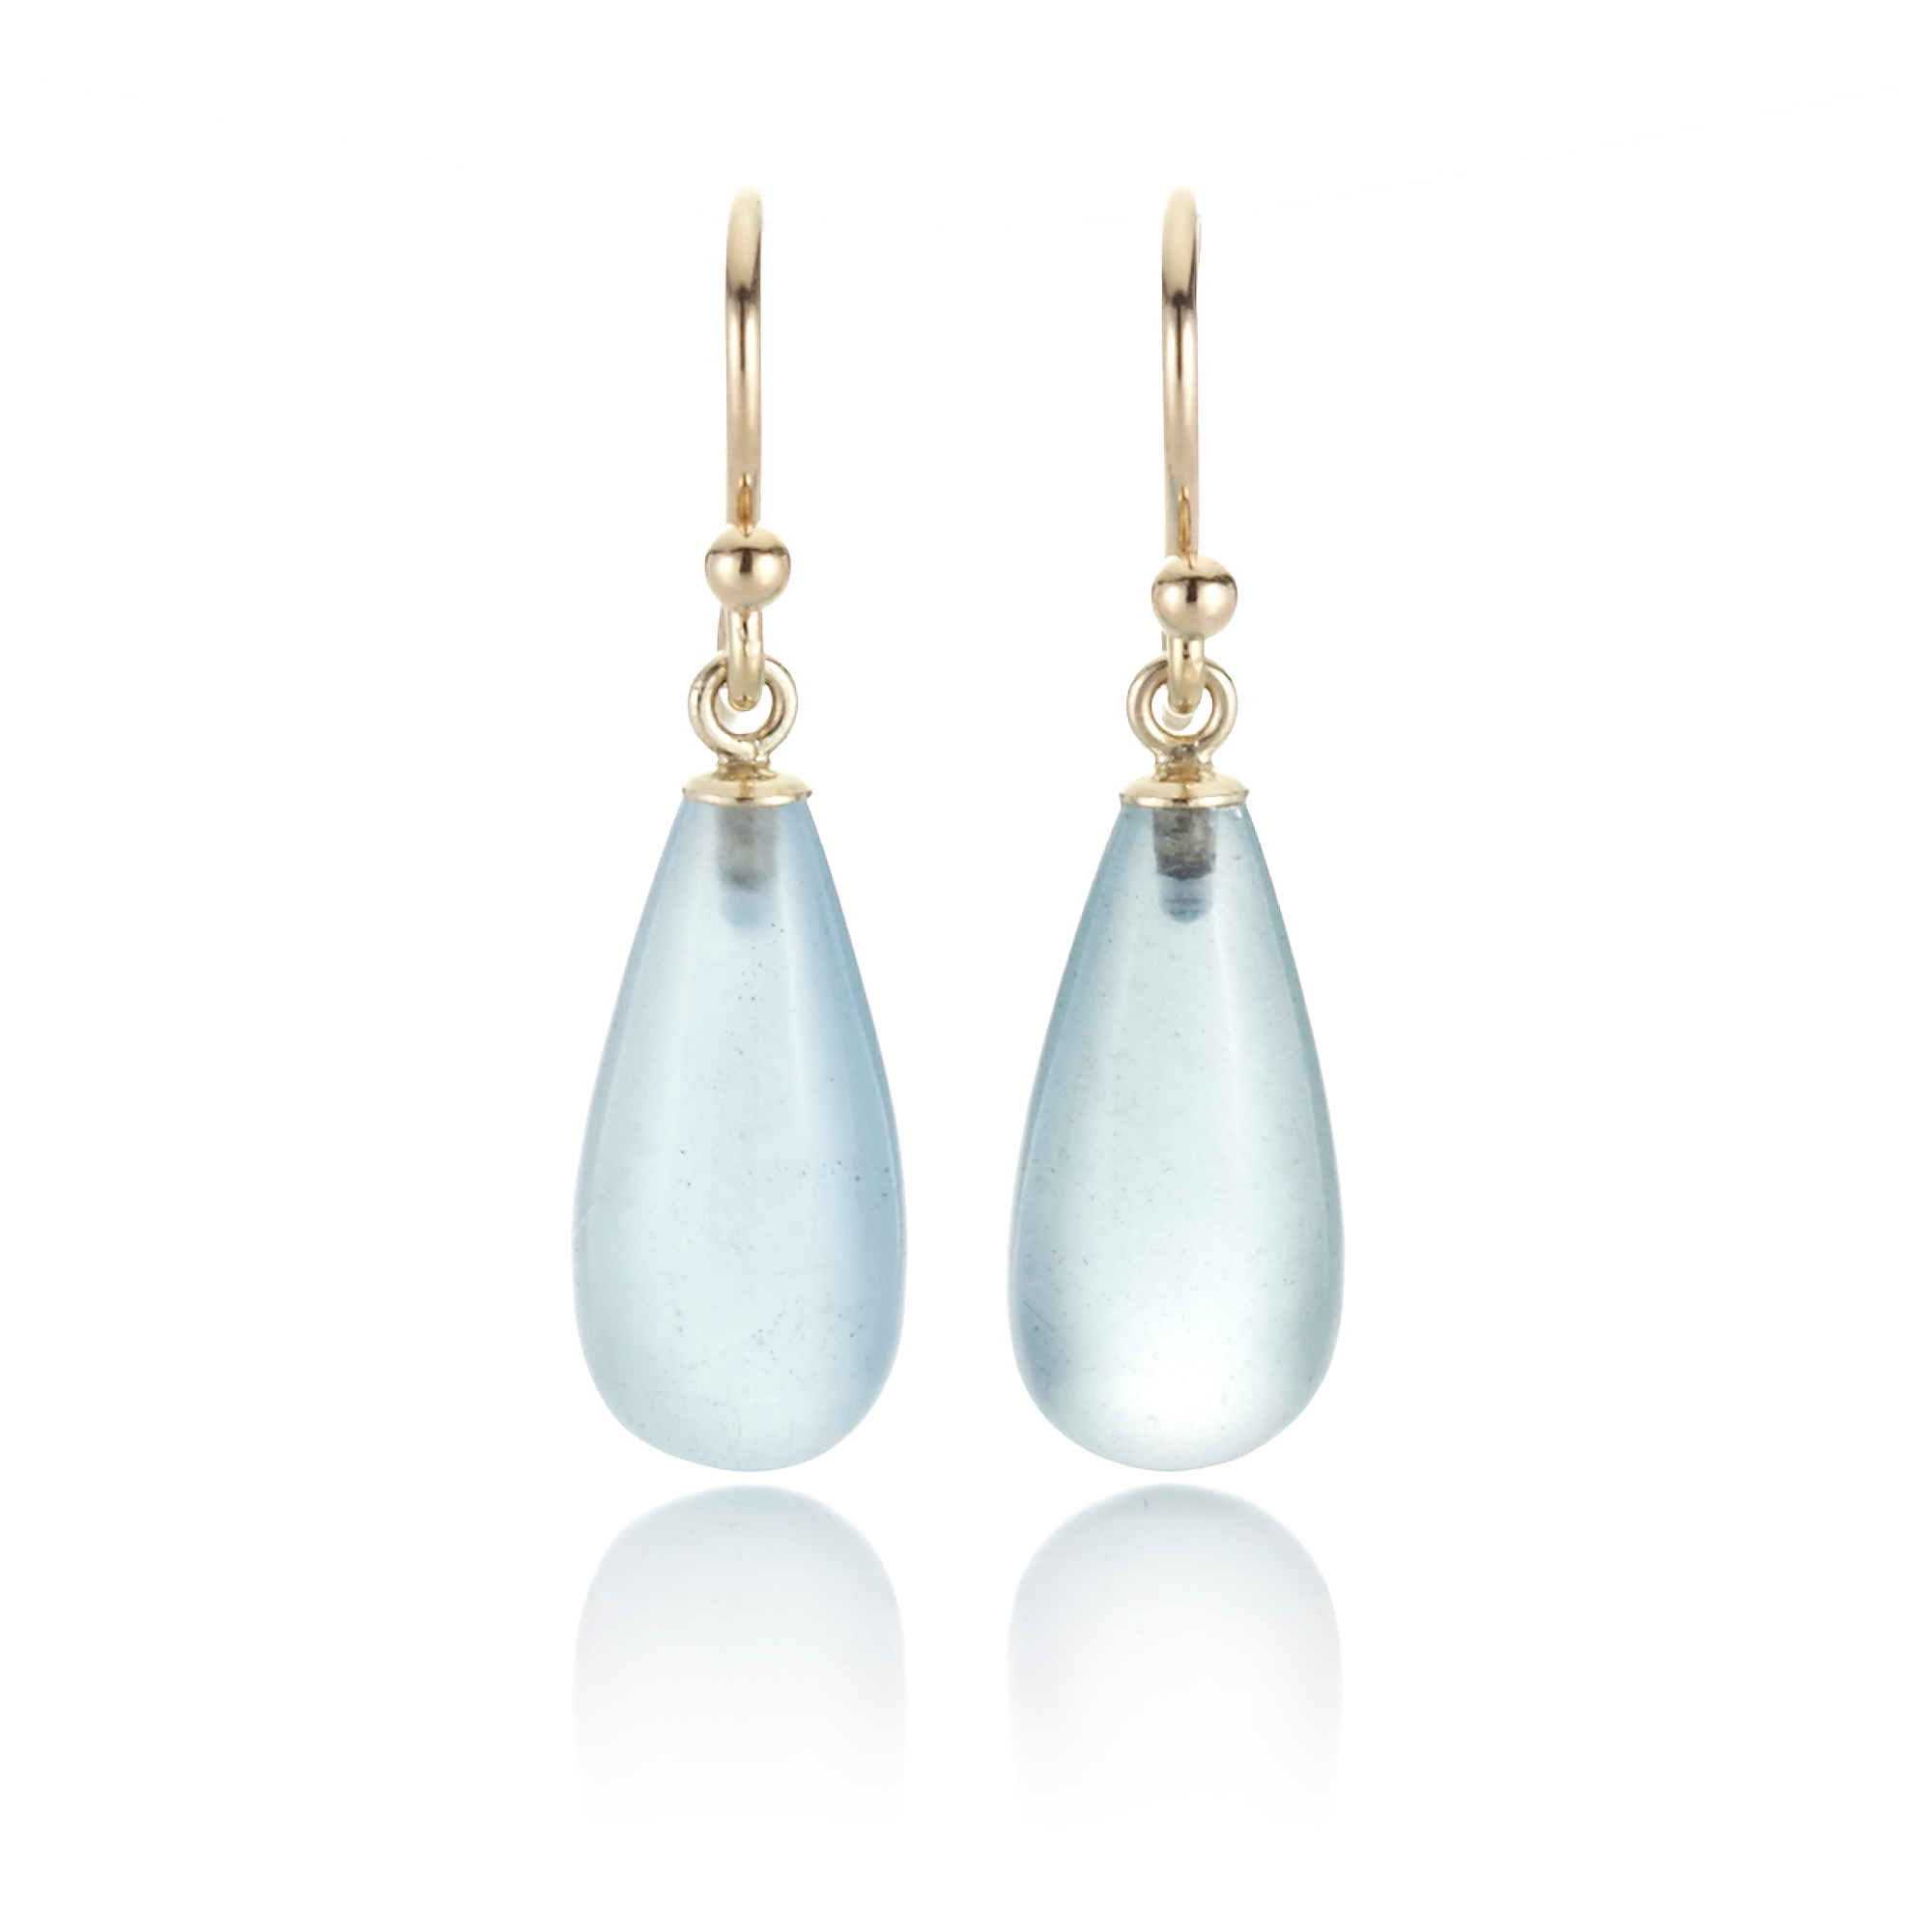 Gump's Small Aquamarine Drop Earrings